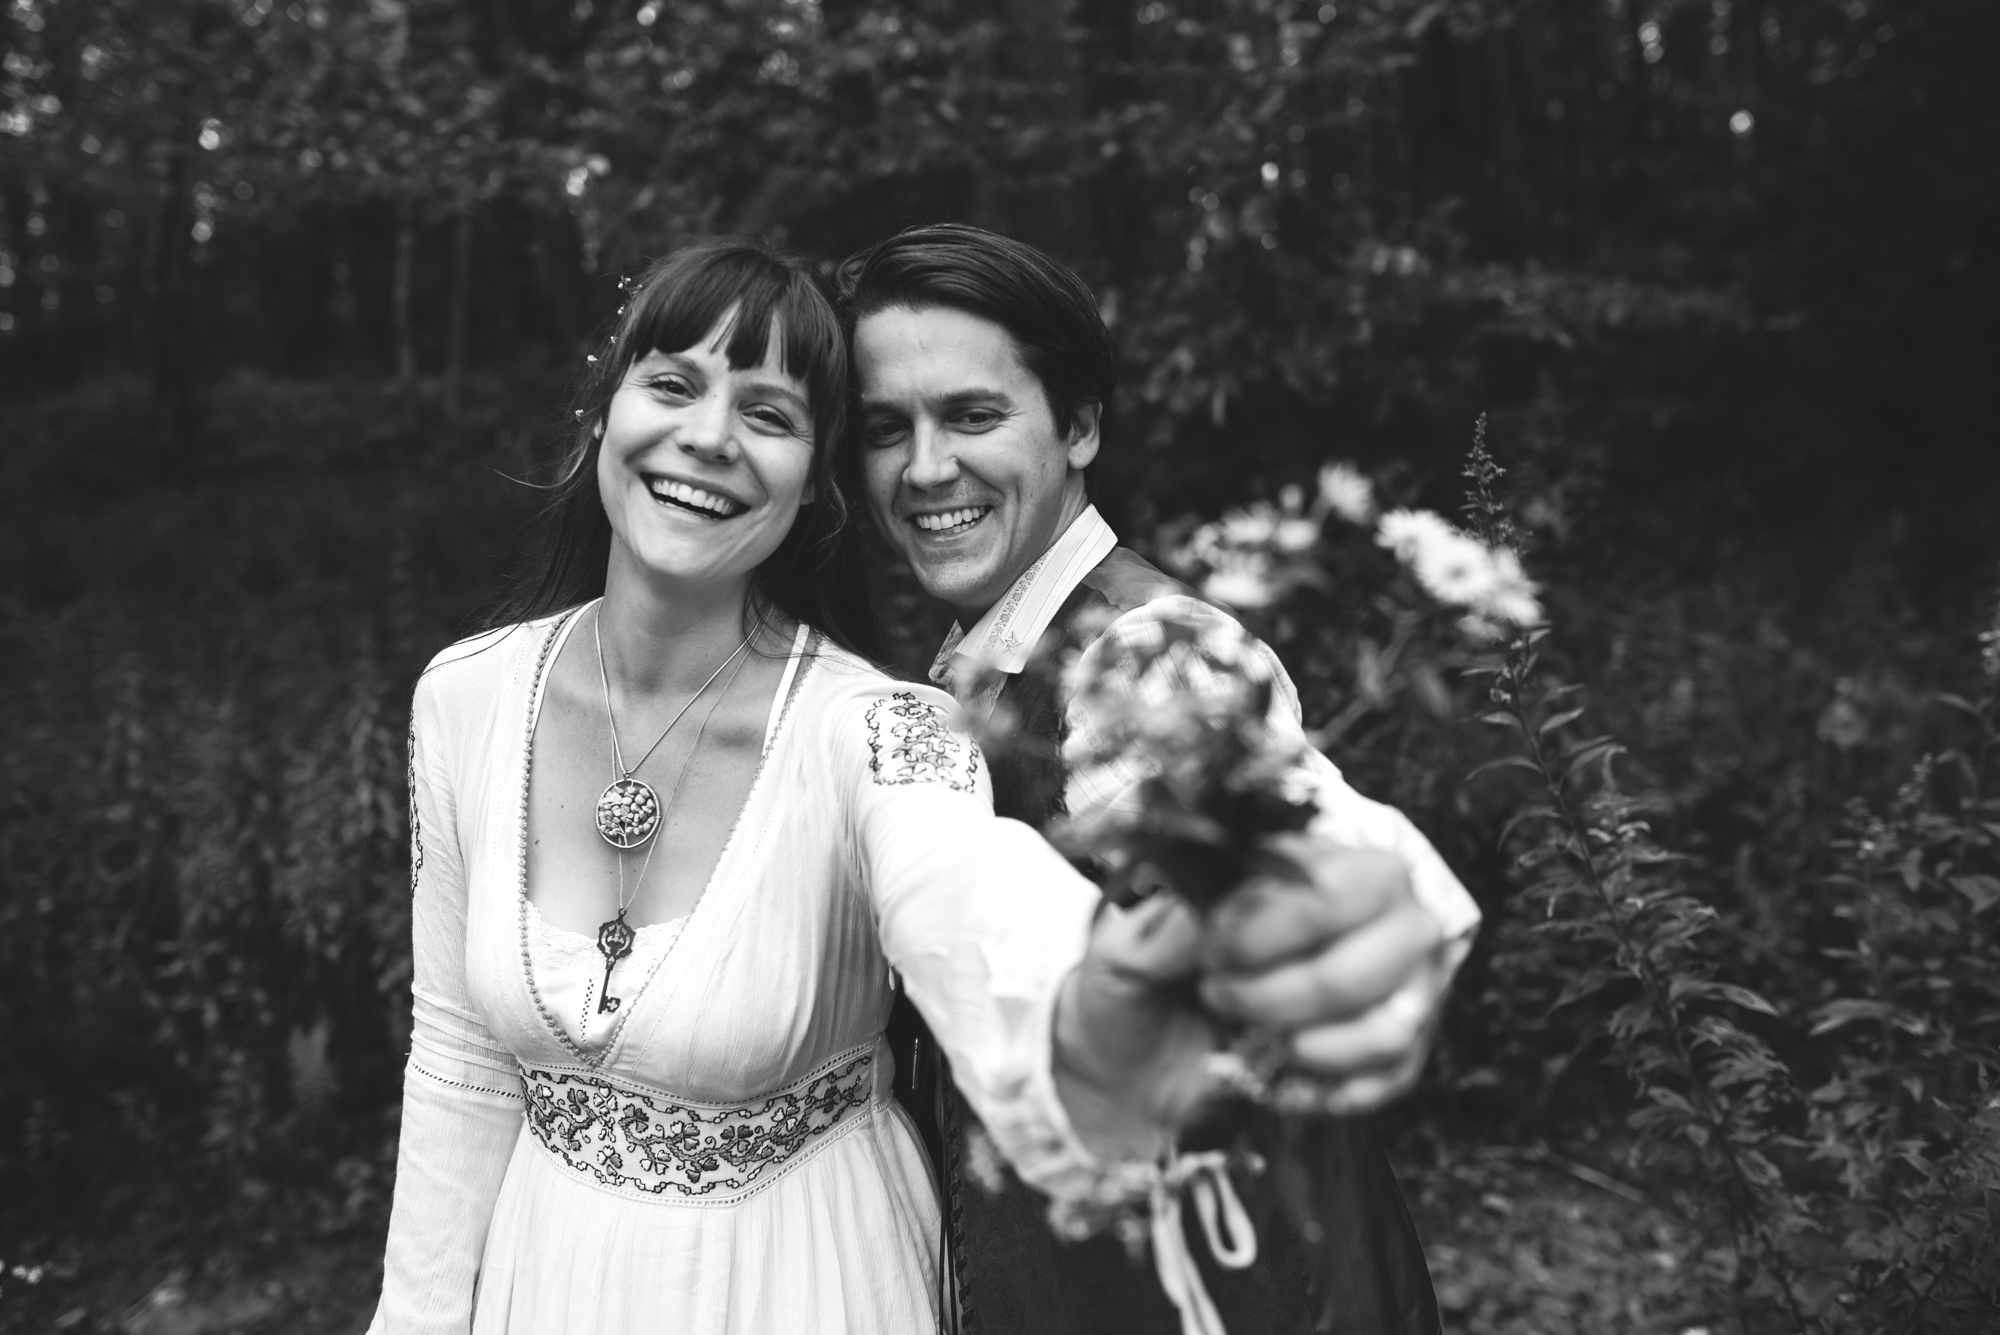 Mountain Wedding, Outdoors, Rustic, West Virginia, Maryland Wedding Photographer, DIY, Casual, black and white photo, bride and groom smiling and holding wildflowers